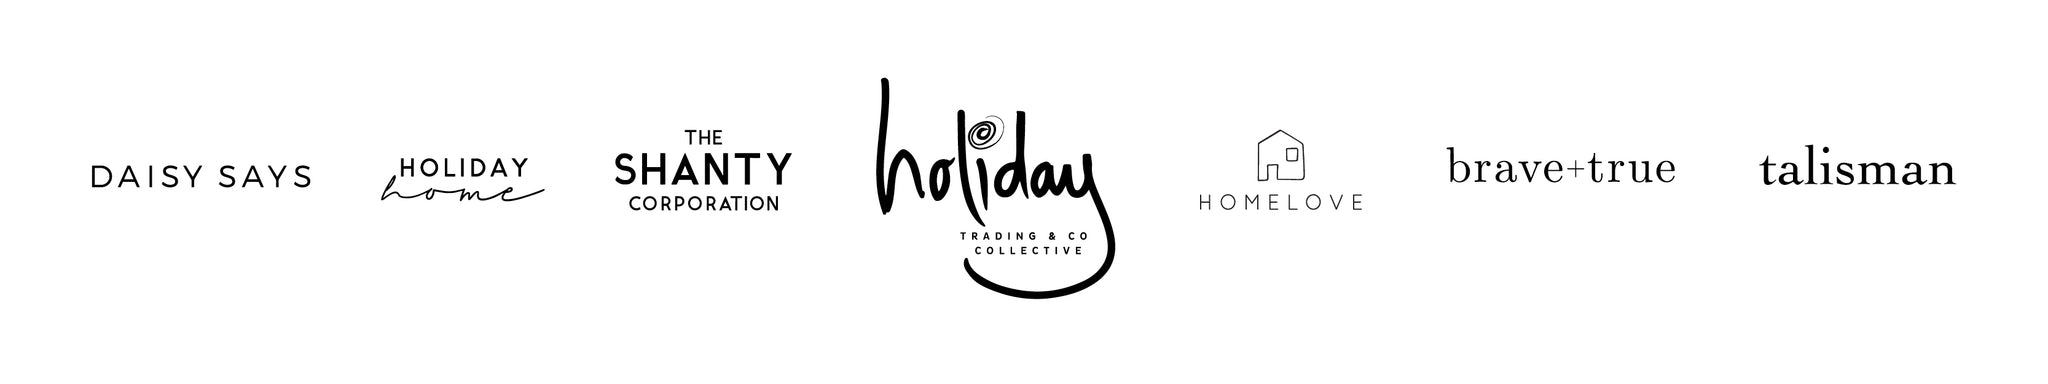 Holiday Trading & Co Brands